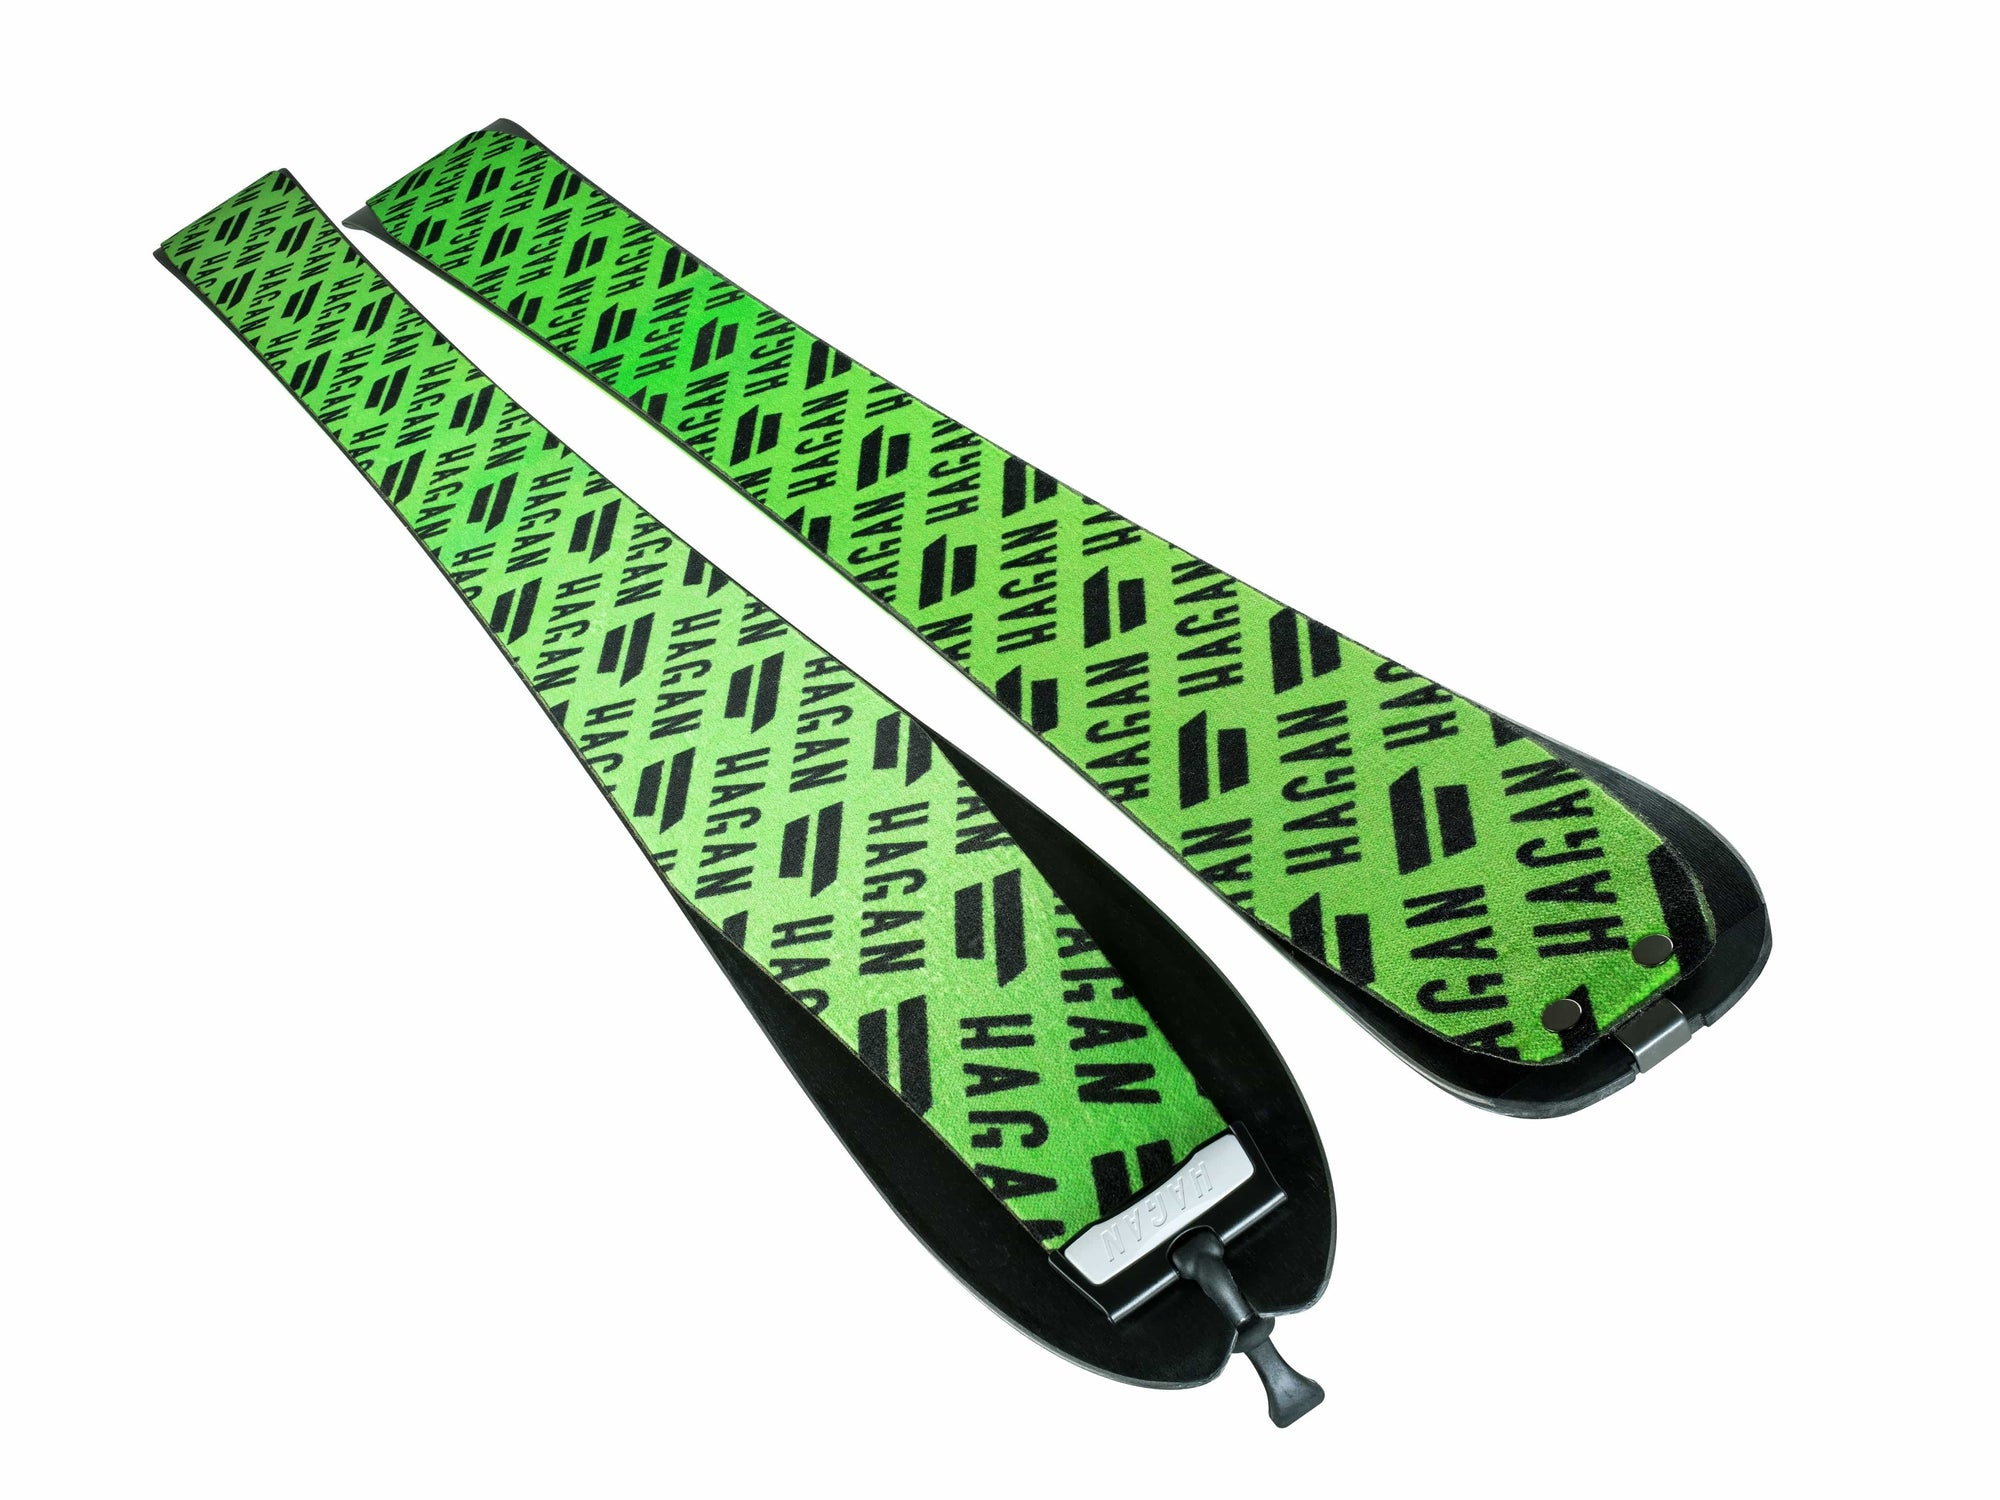 Core 83 and Core 83-L Climbing Skins, Climbing Skins - Hagan Ski Mountaineering